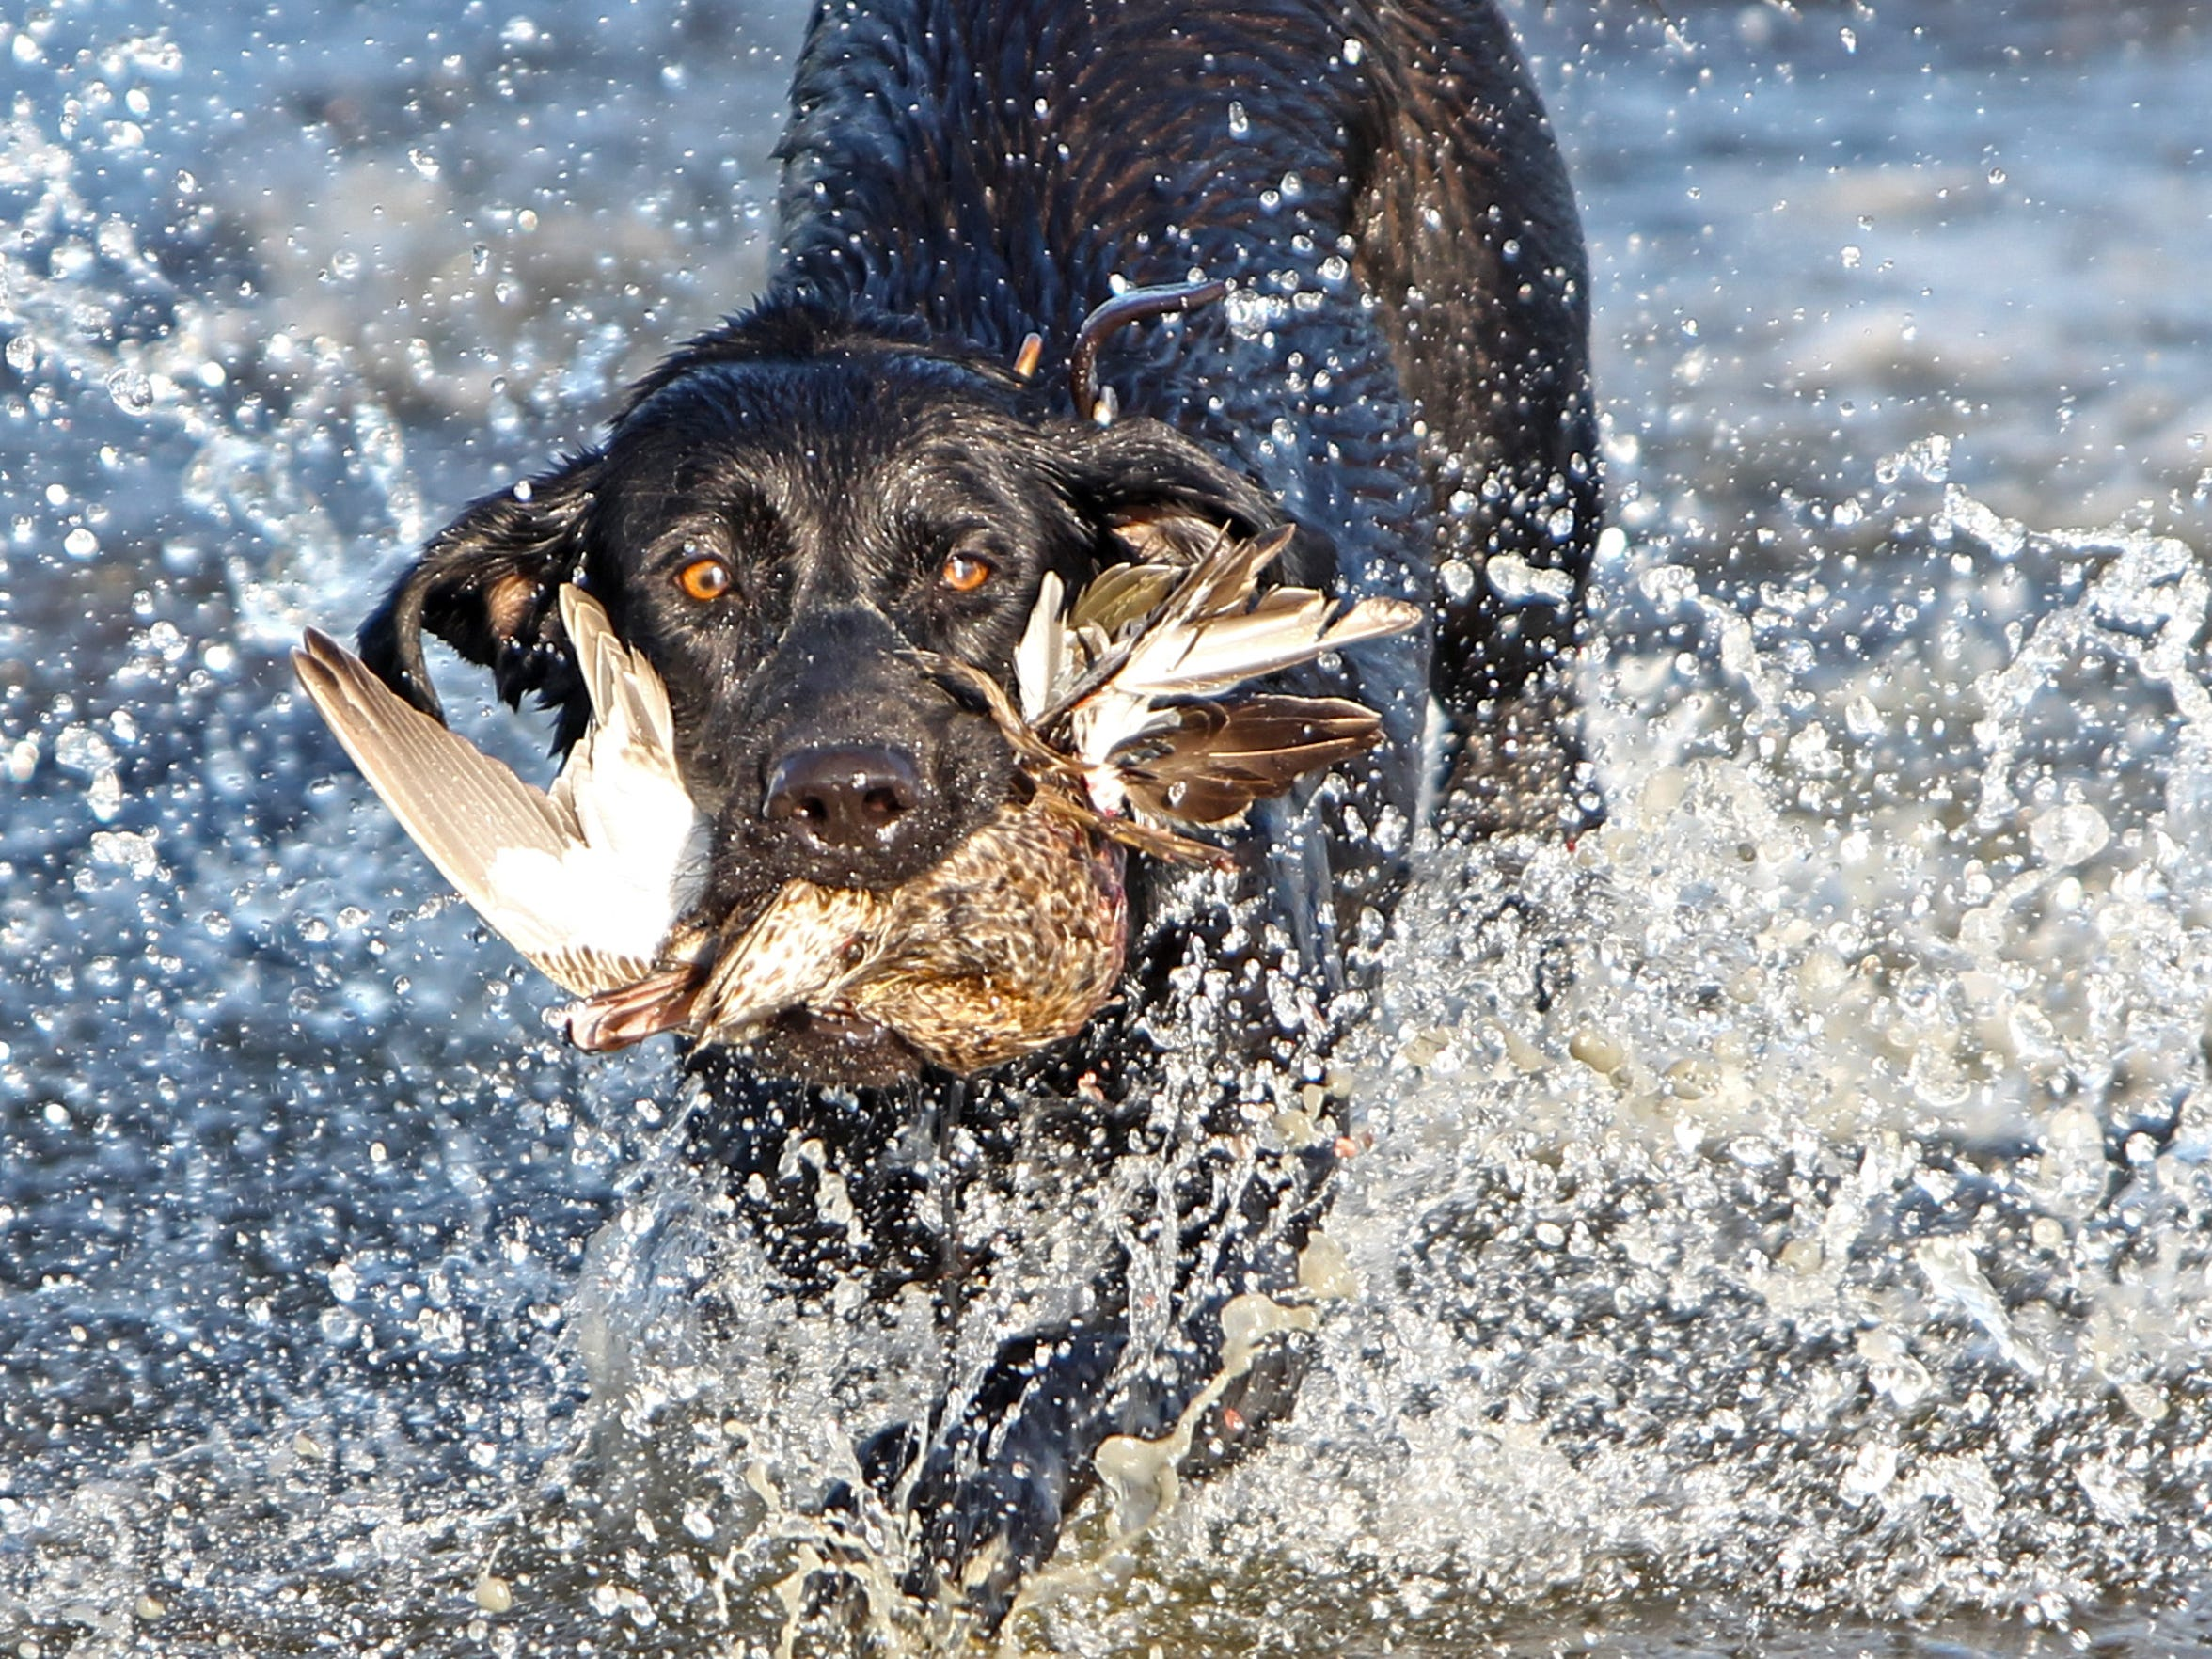 A voucher for a guided duck hunt under the tree might put a smile on the face of the hunter on your Christmas list.